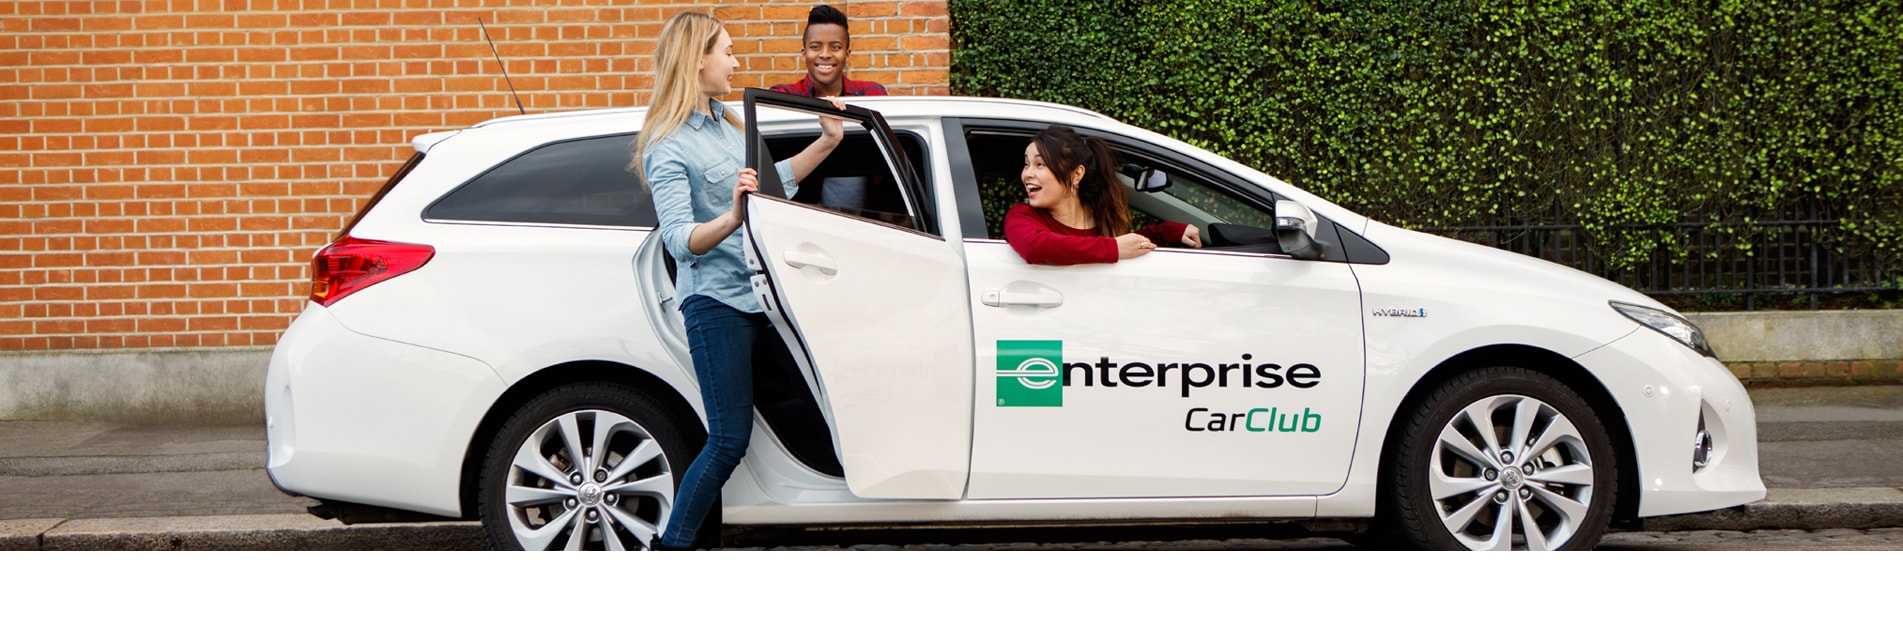 It started with Enterprise Rent-A-Car in and it continues today with all of our transportation solutions. At Enterprise Truck Rental, our dedicated and knowledgeable employees will work alongside you to ensure you get the right truck or van for your needs with the service you have come to expect from Enterprise.